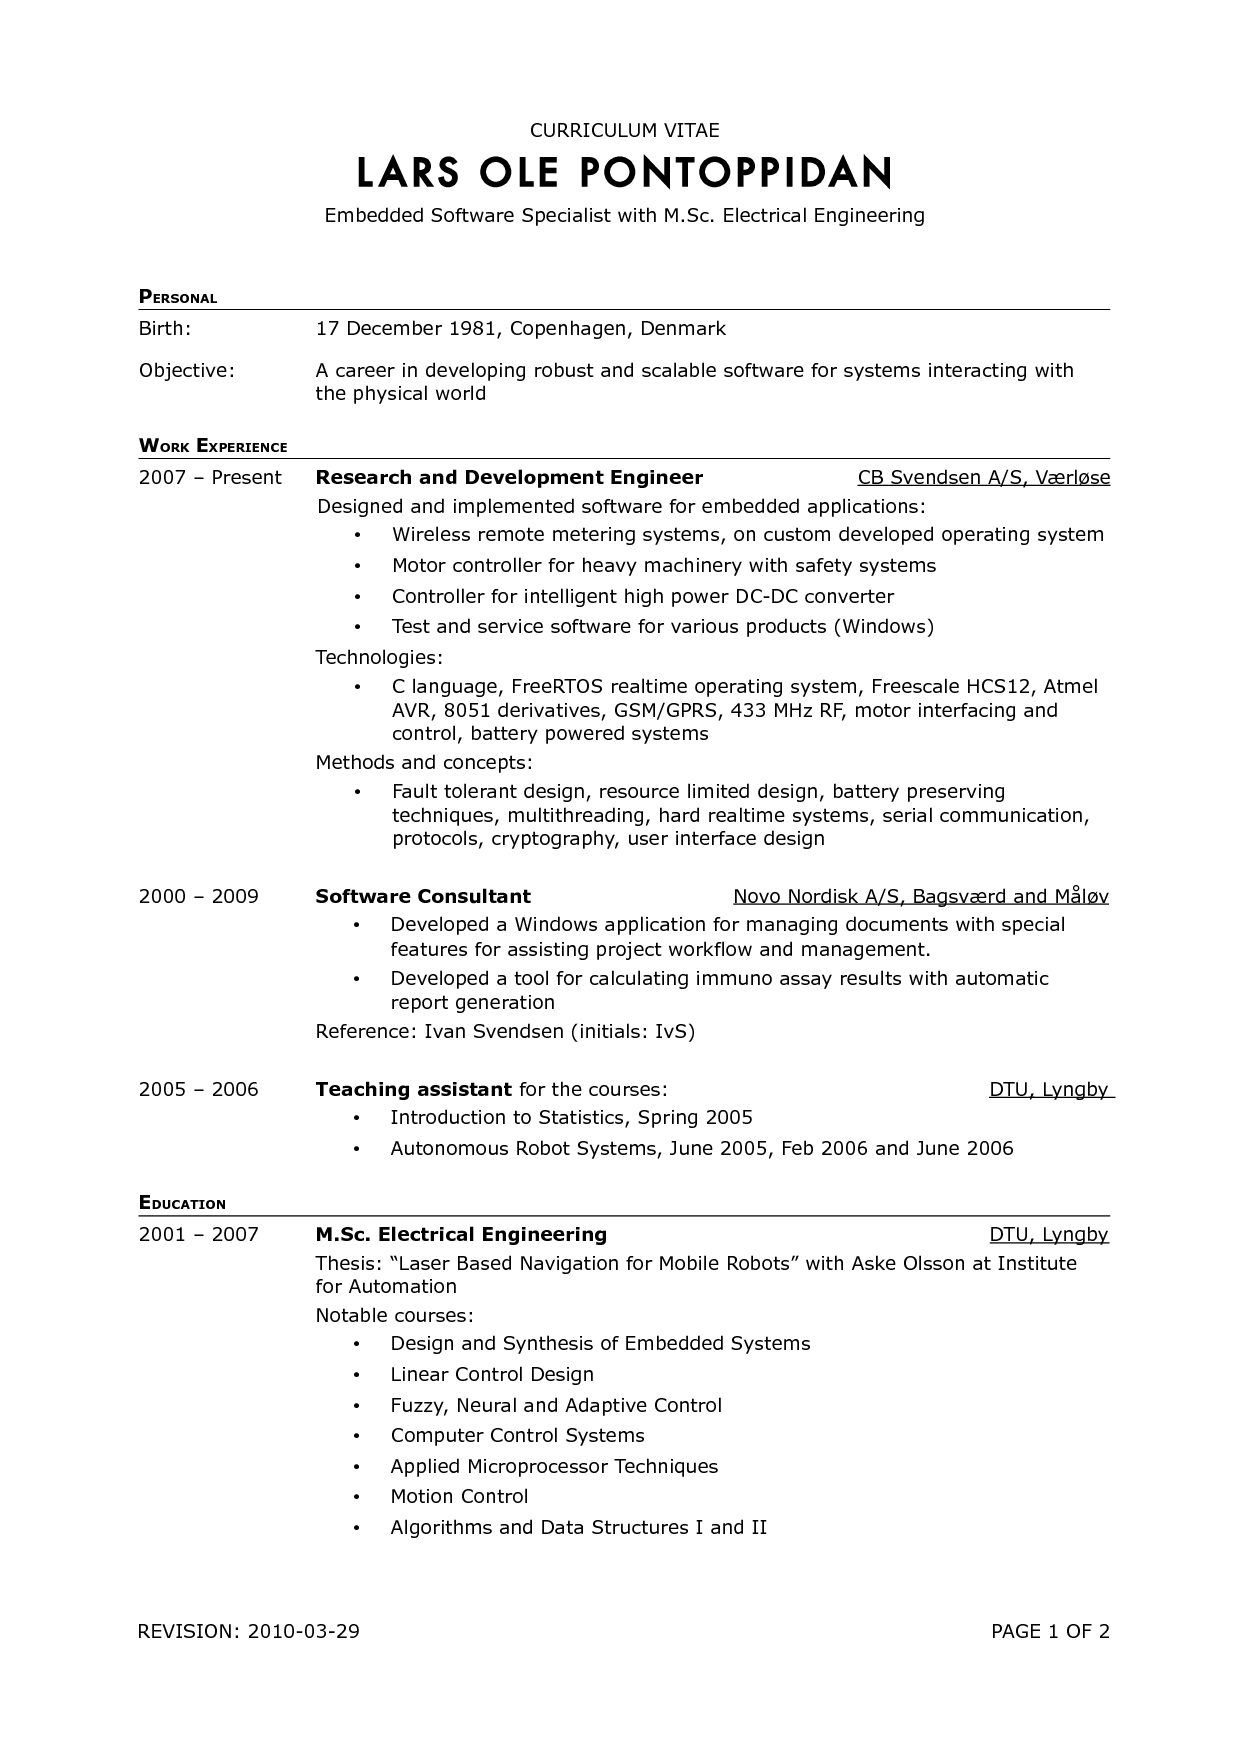 Free Resume Outline Outline Of A Resume Job Resume Examples Simple Resume Examples Basic Resume Examples